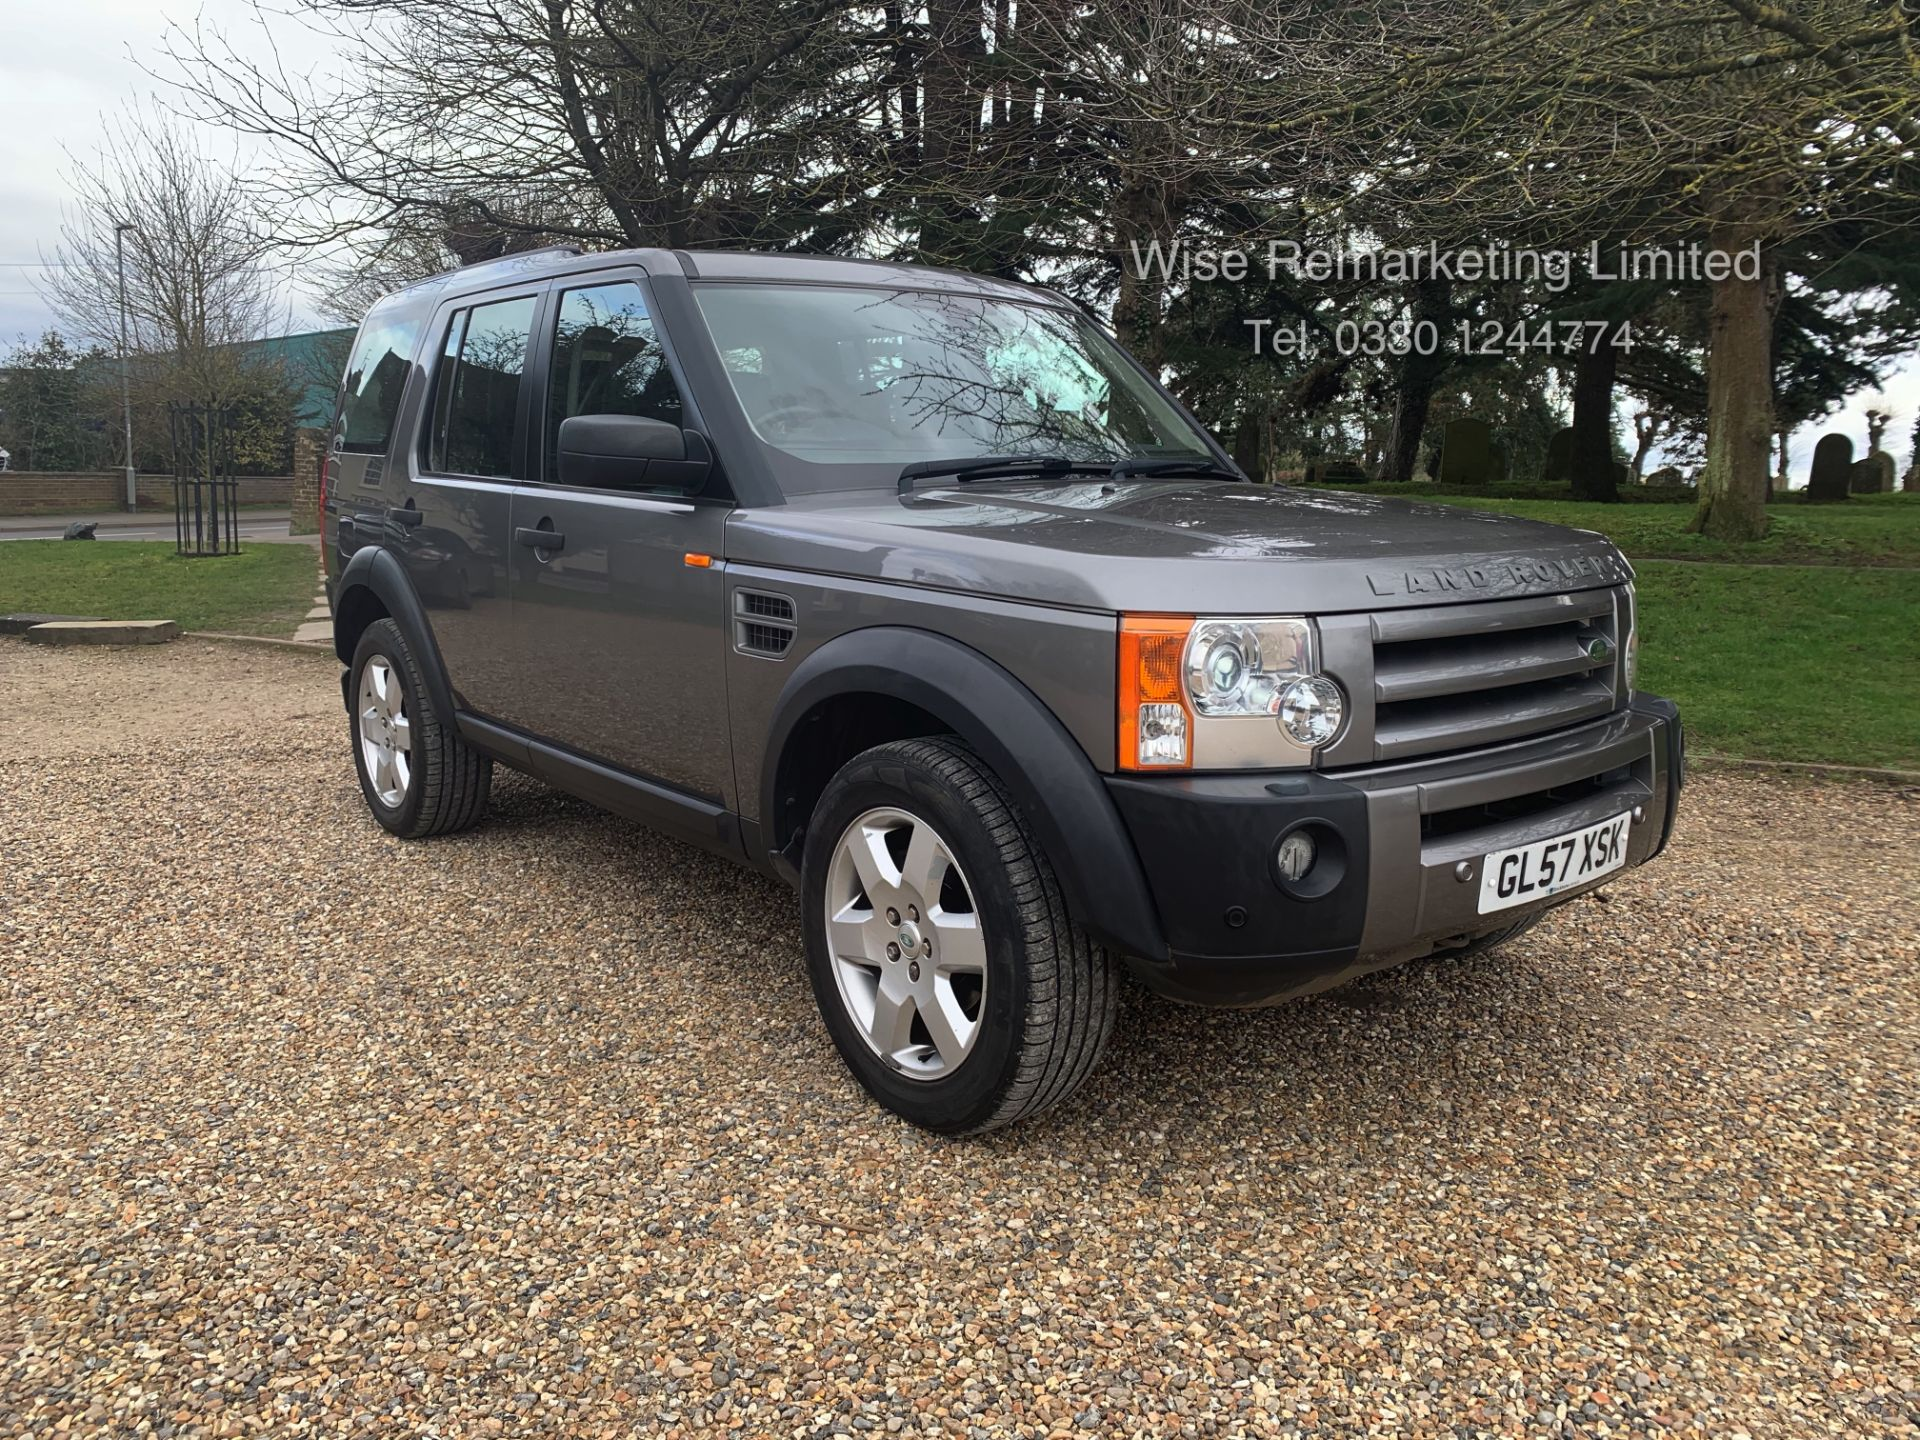 Lot 36 - Land Rover Discovery 2.7 TDV6 HSE - Automatic - 2008 Reg - Full Leather - 7 Seater - Sat Nav -